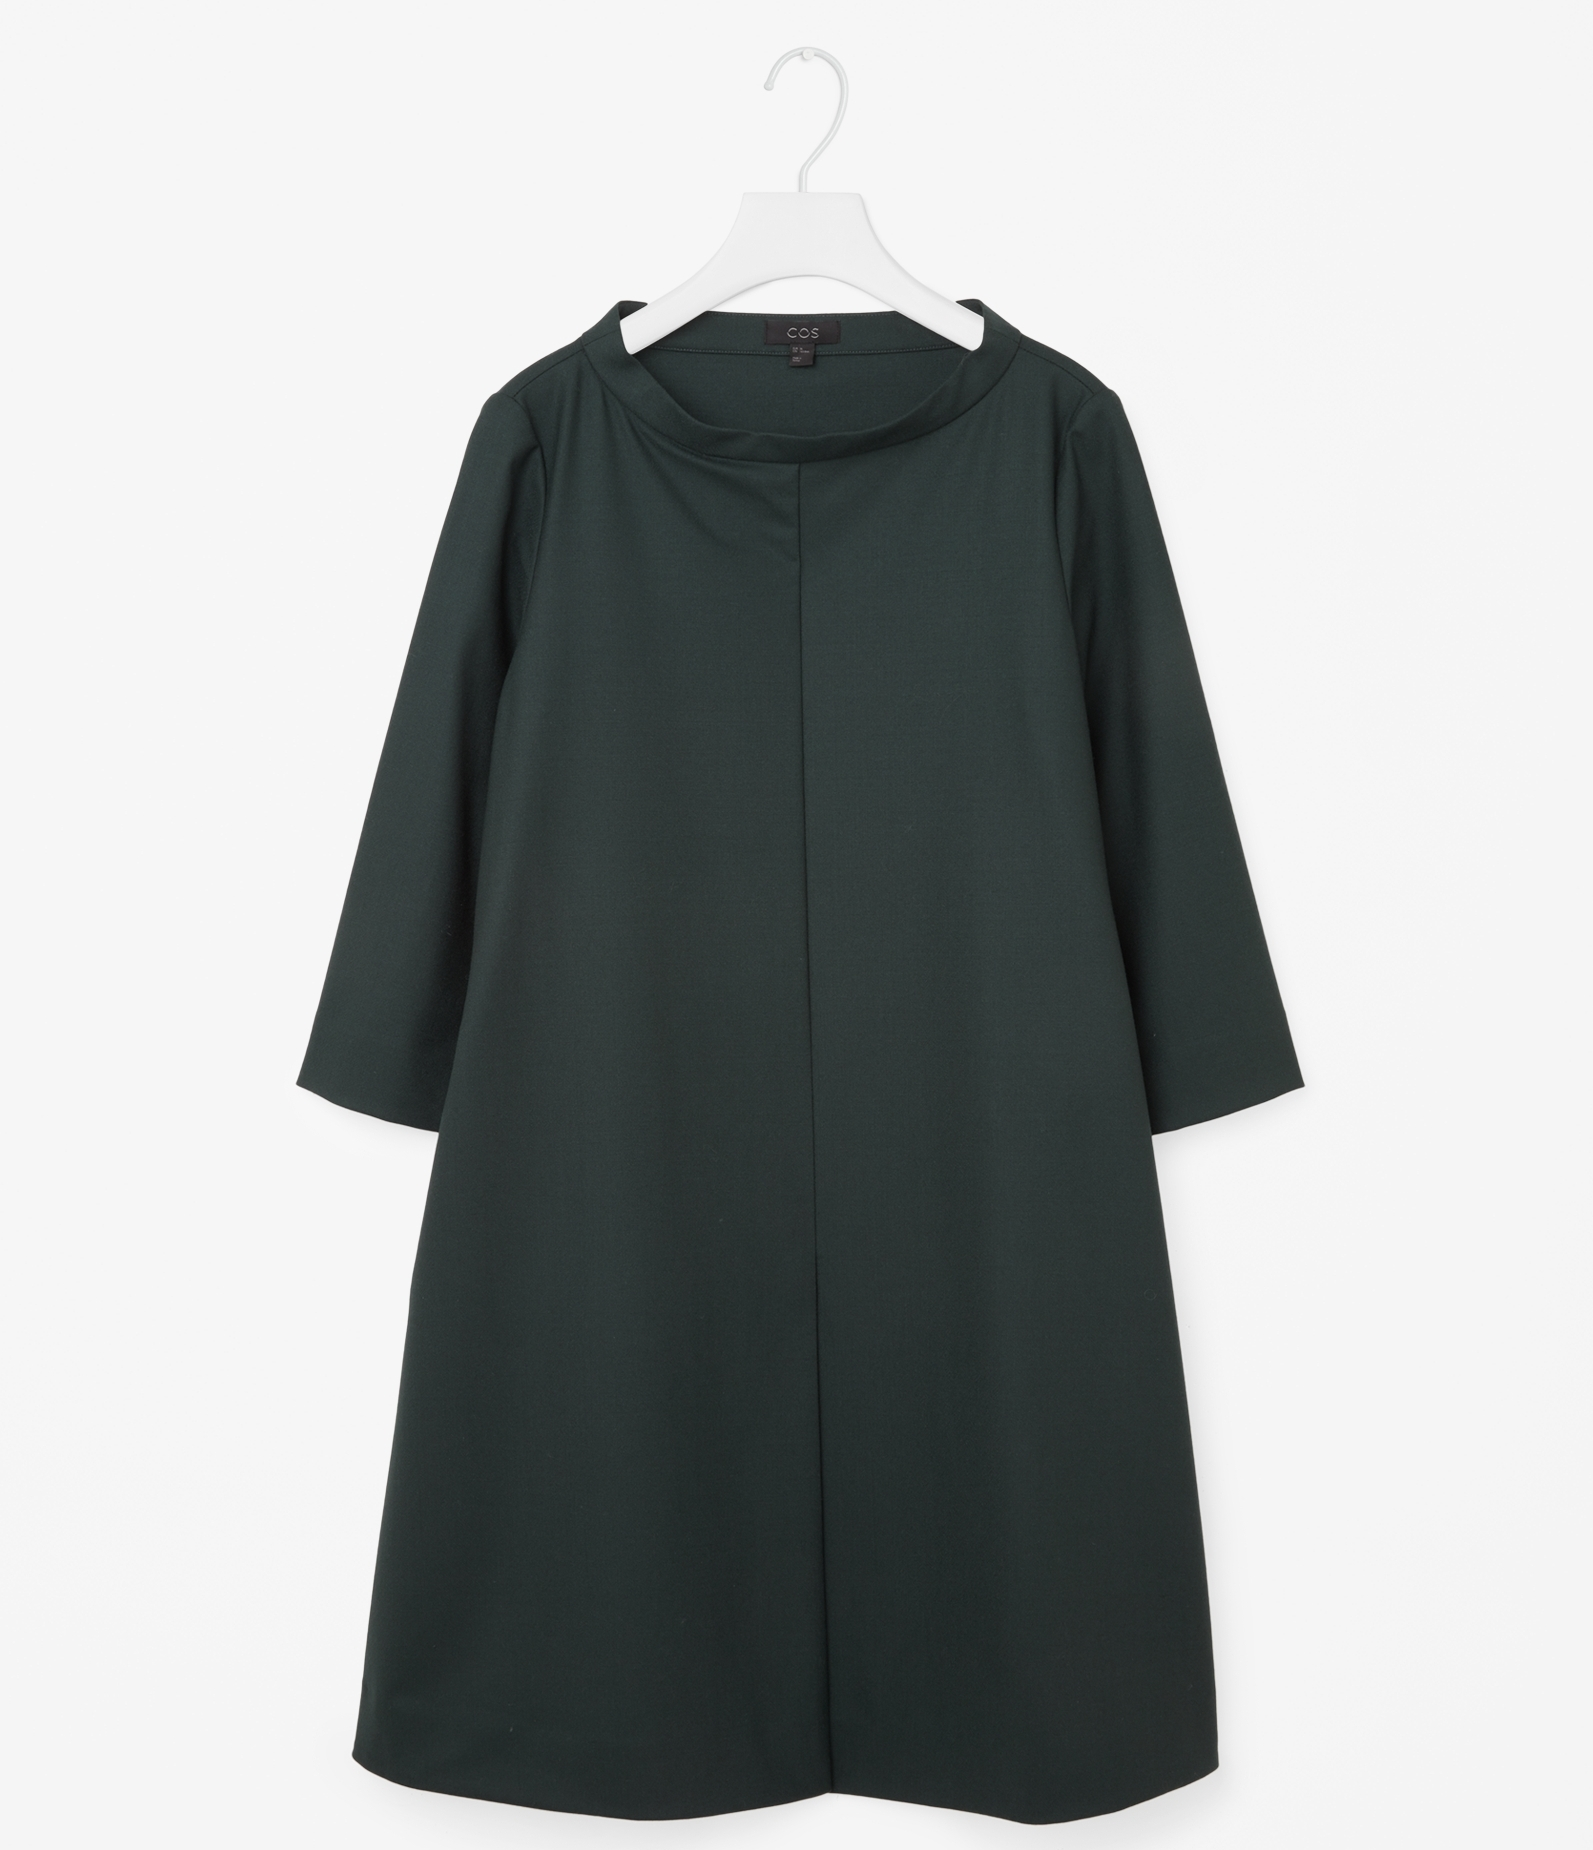 Wide Neck dress Green COS || The Design Edit